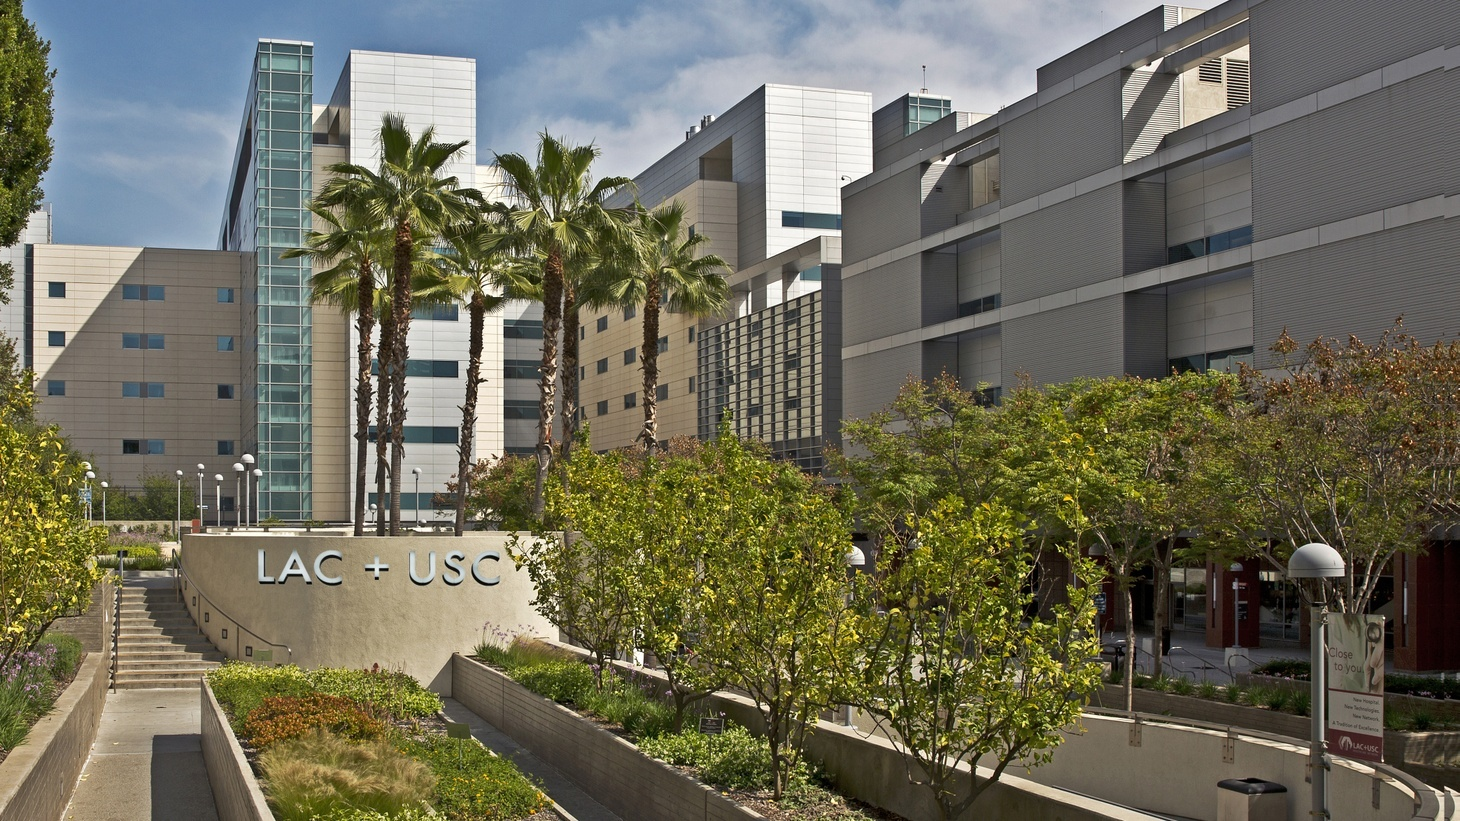 LA County + USC Medical Center is preparing for crisis care mode, says Dr. Brad Spellberg.